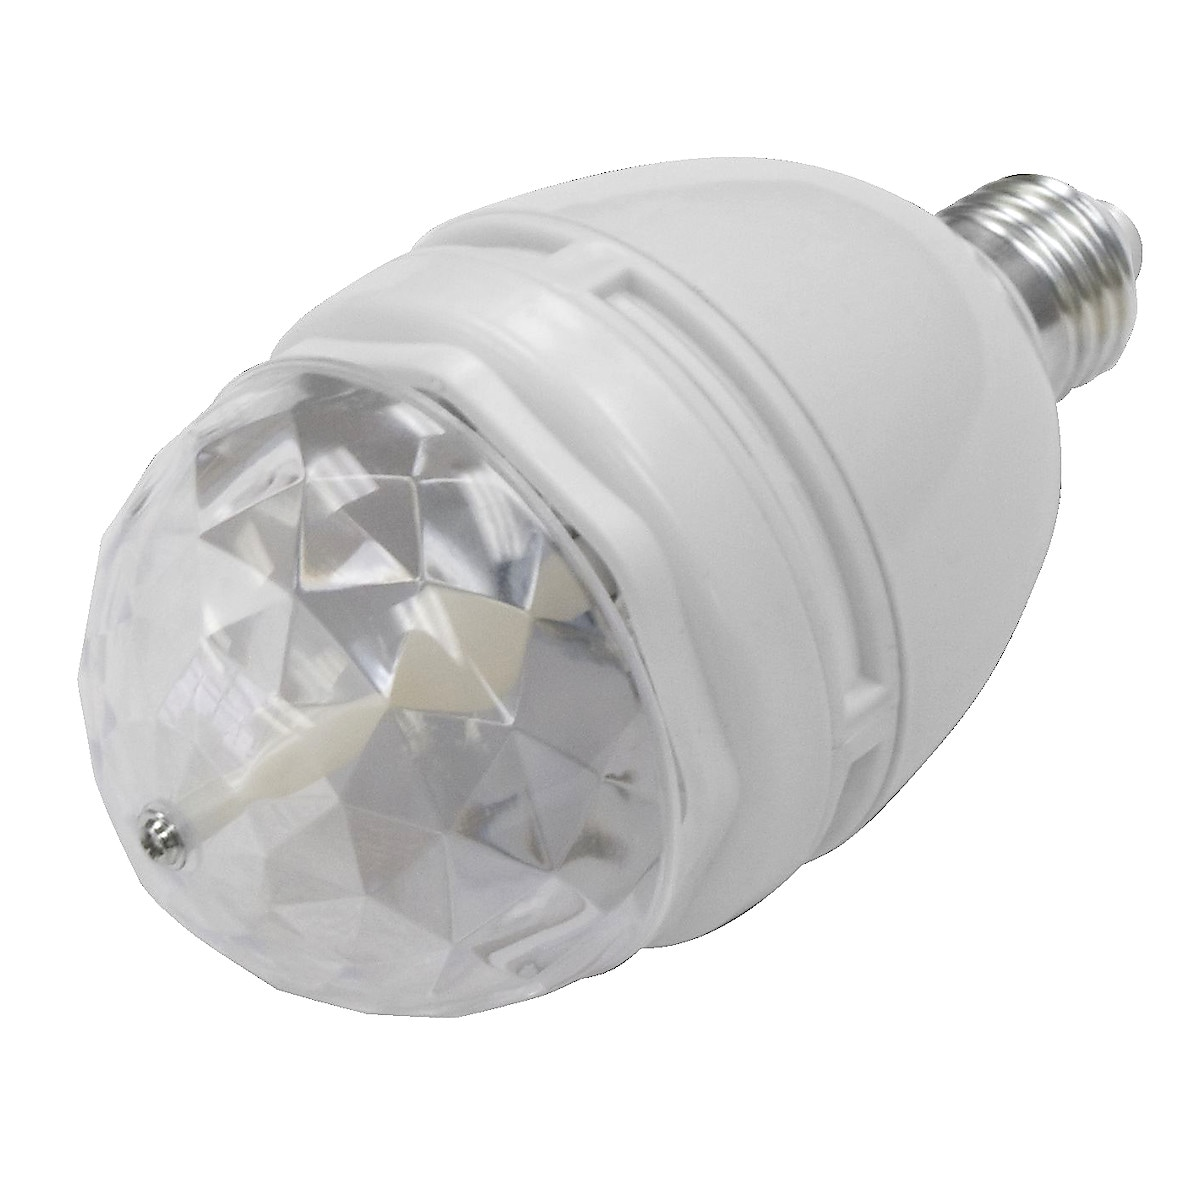 LED-Discolampe